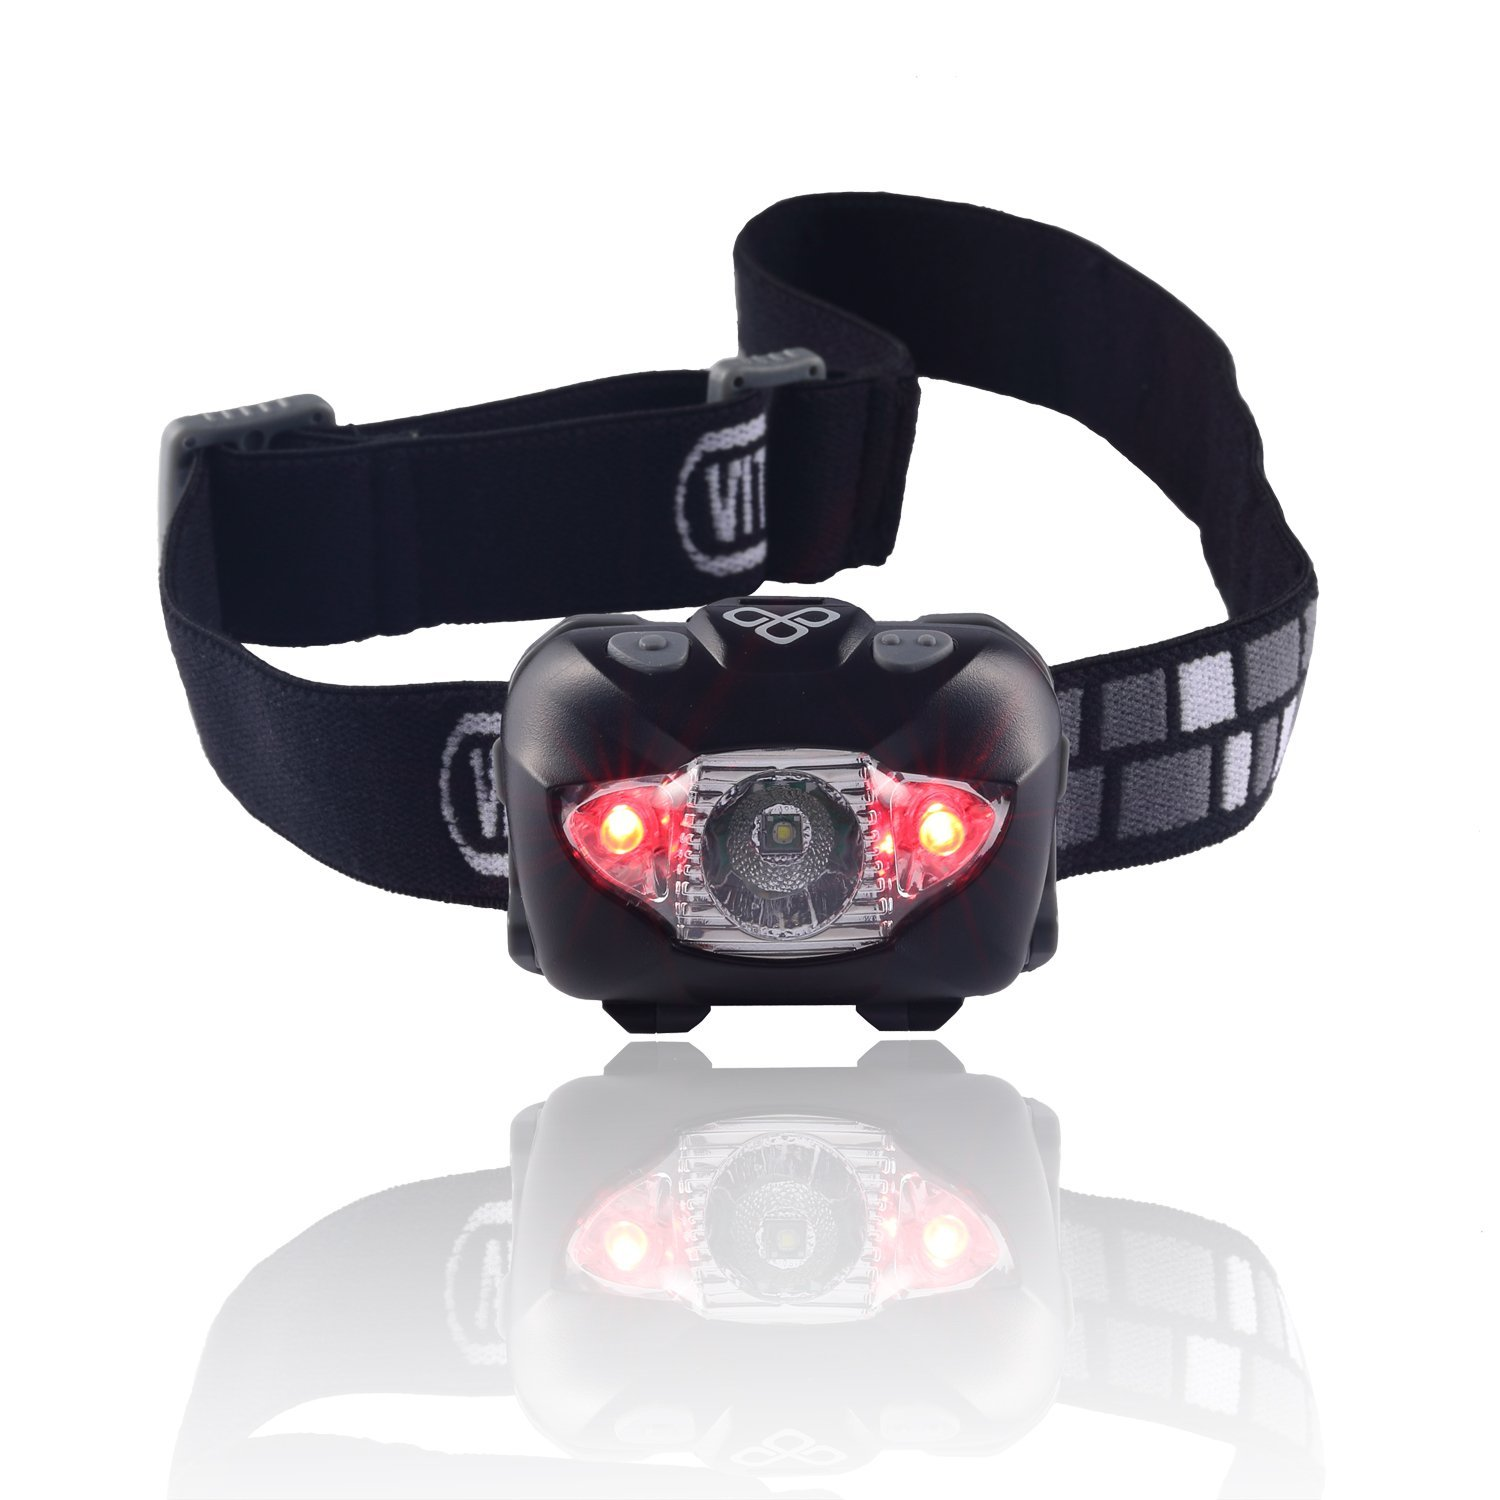 Best Brightest LED Headlamp Reviews